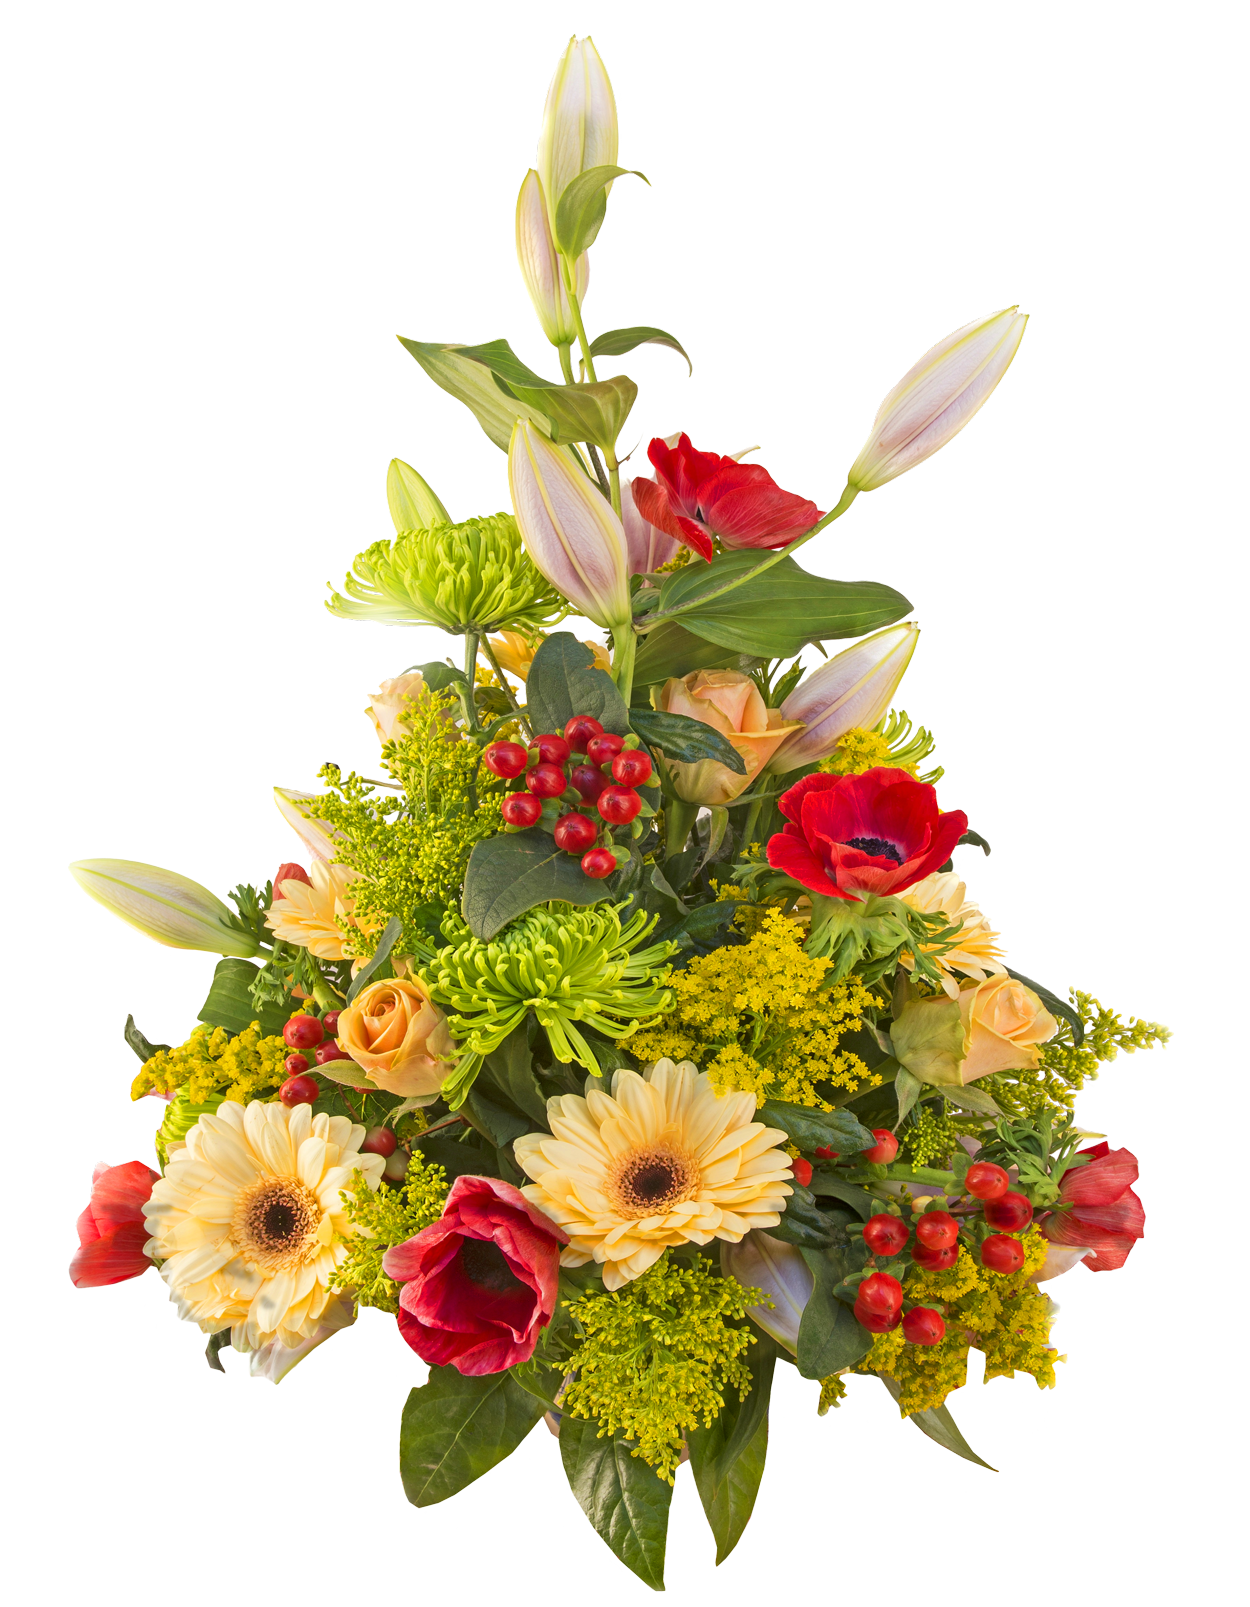 Floral bouquet png. Flower image purepng free